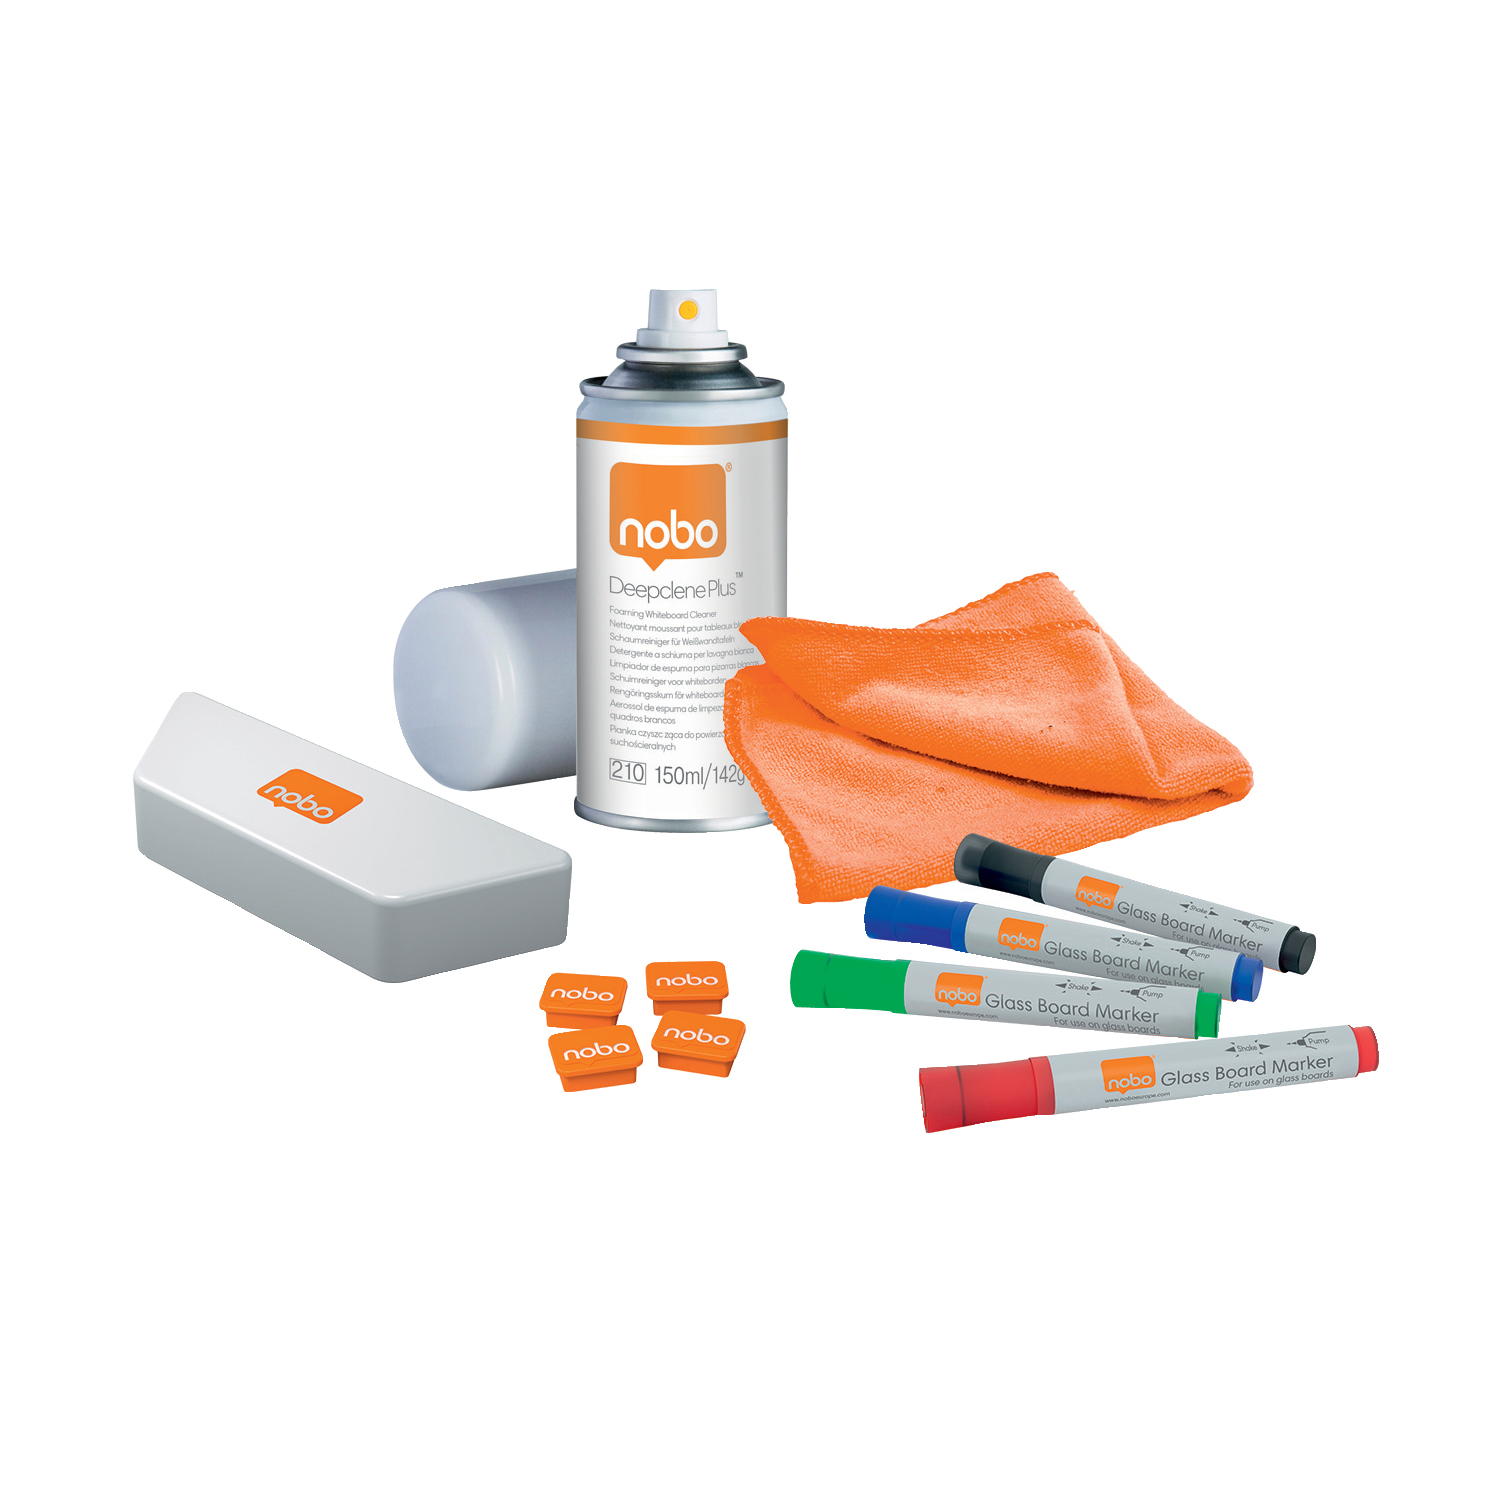 Nobo Whiteboard User Kit 4 Mrkrs/Eraser/Refills/Absorbent Cloths/25ml Cleaning Spray/Magnets Ref 1901430